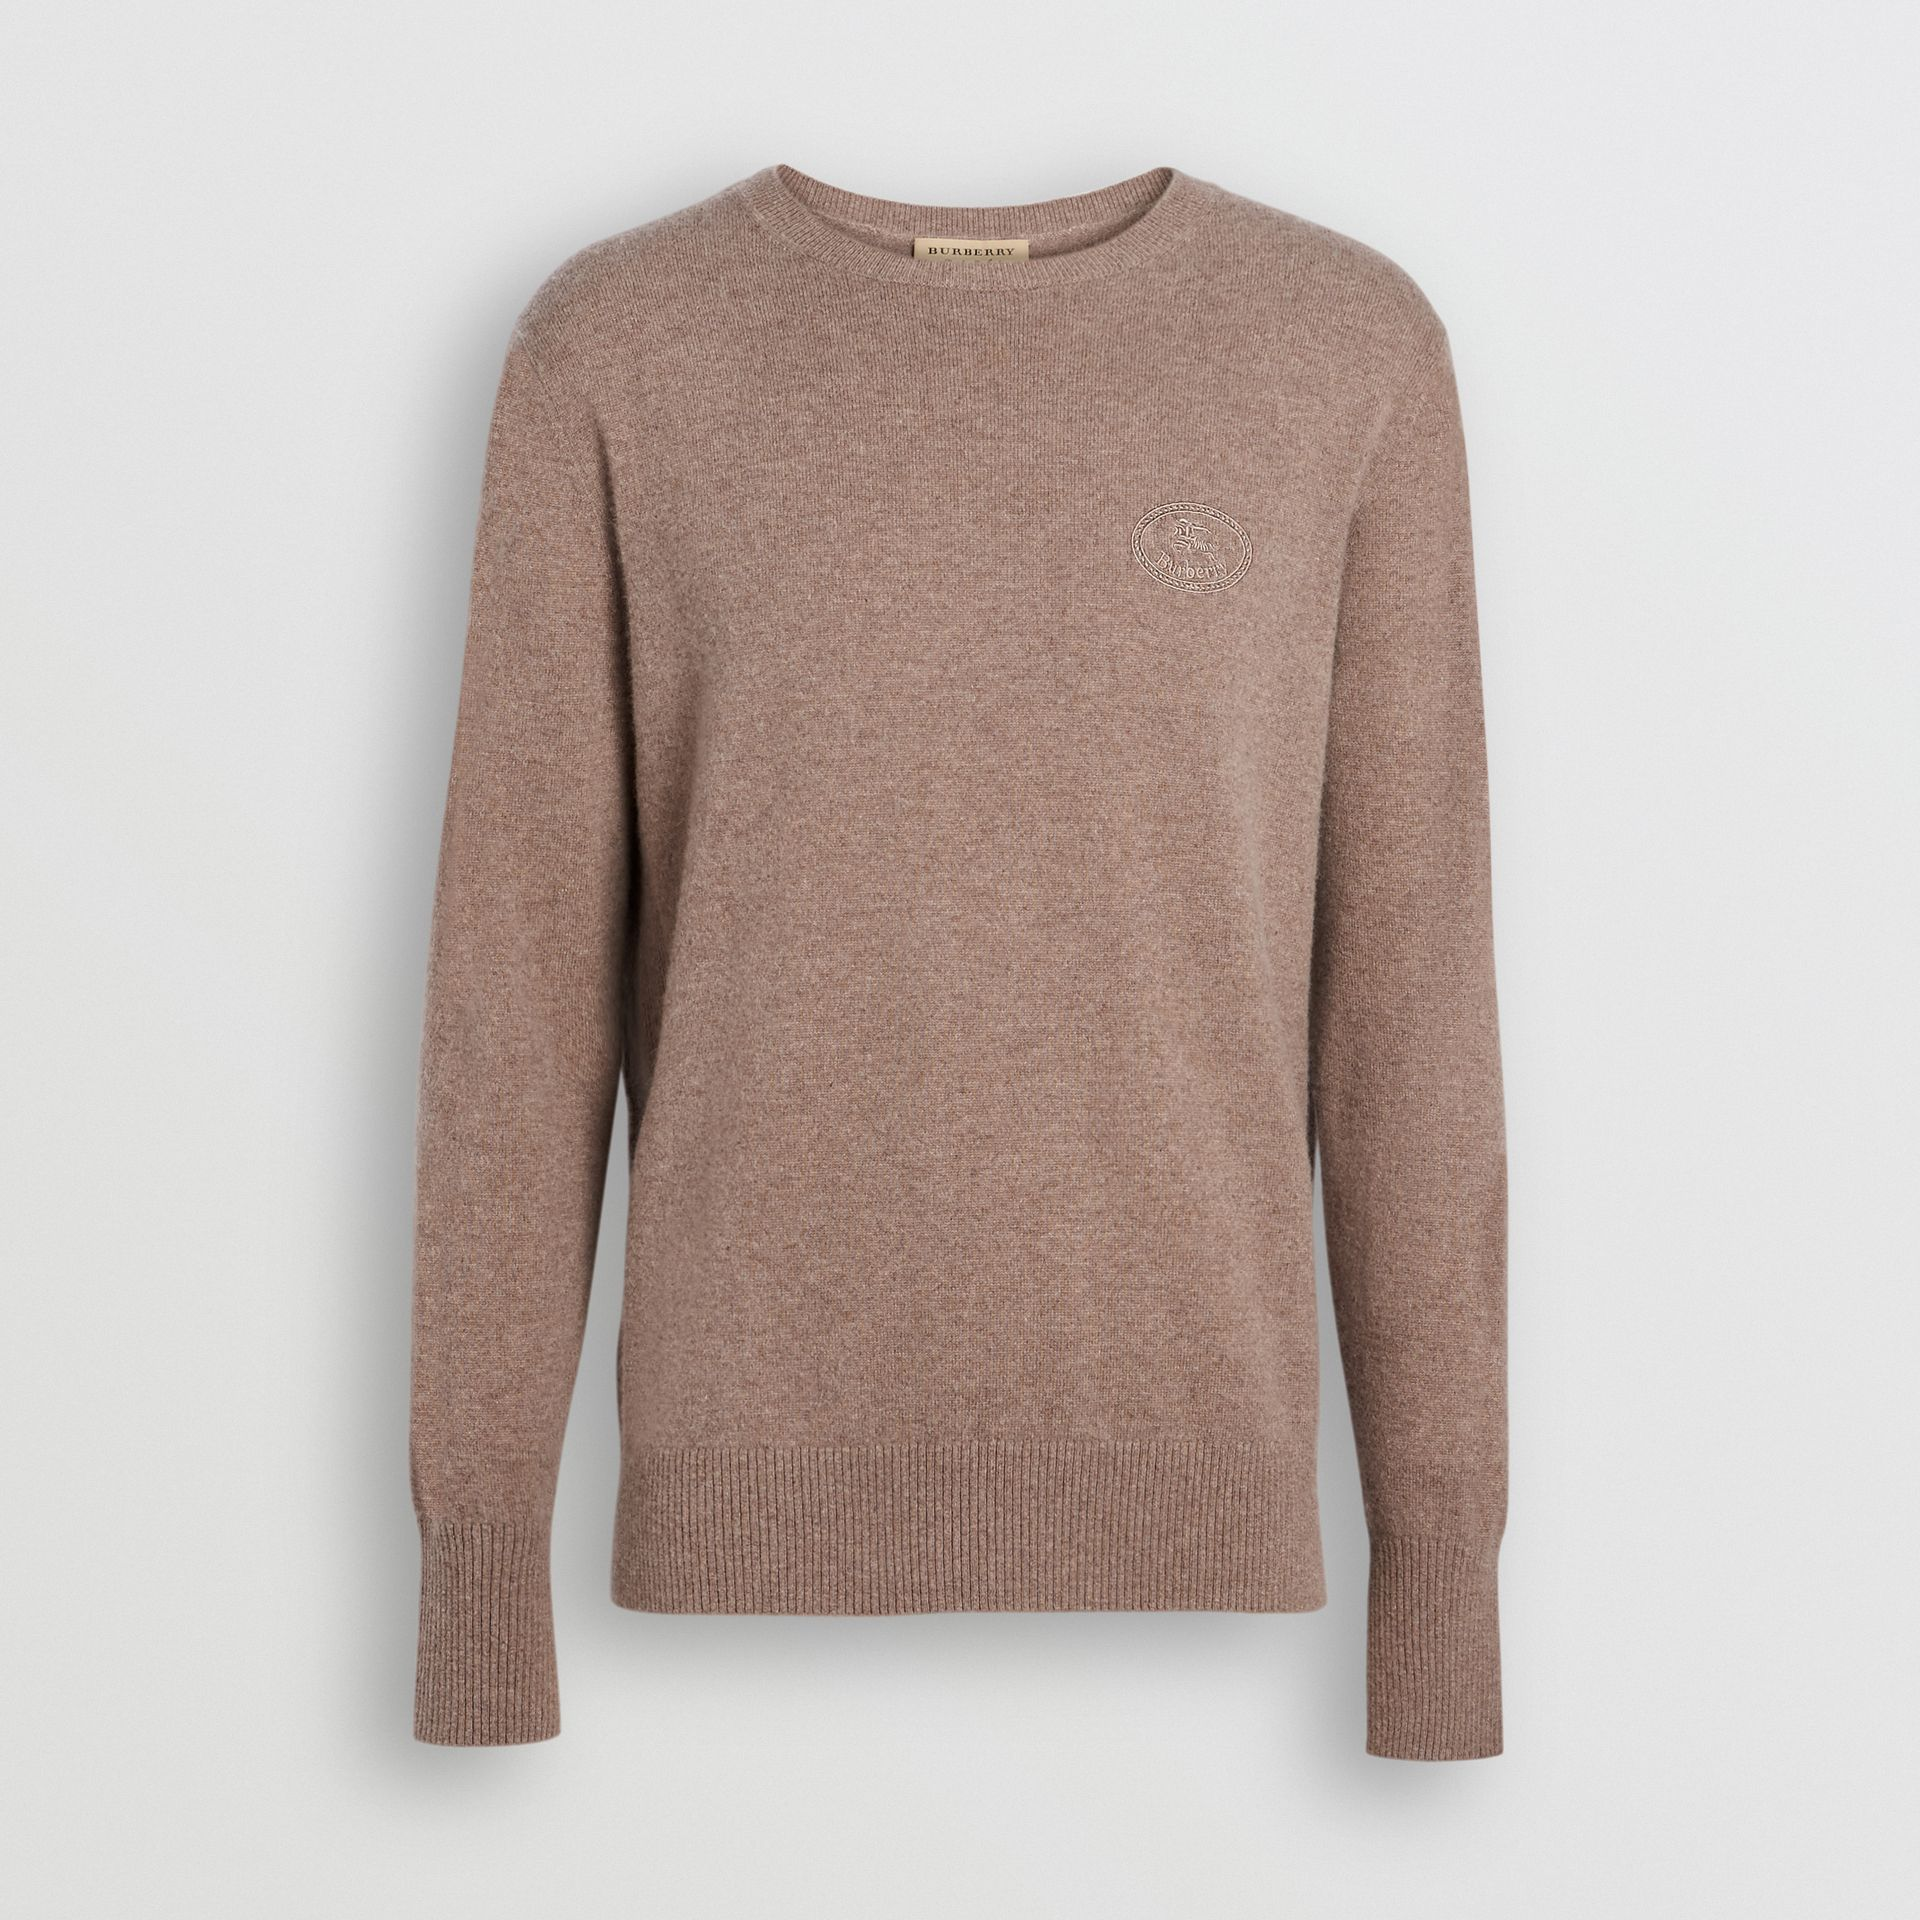 Embroidered Archive Logo Cashmere Sweater in Camel Melange - Men | Burberry United States - gallery image 3